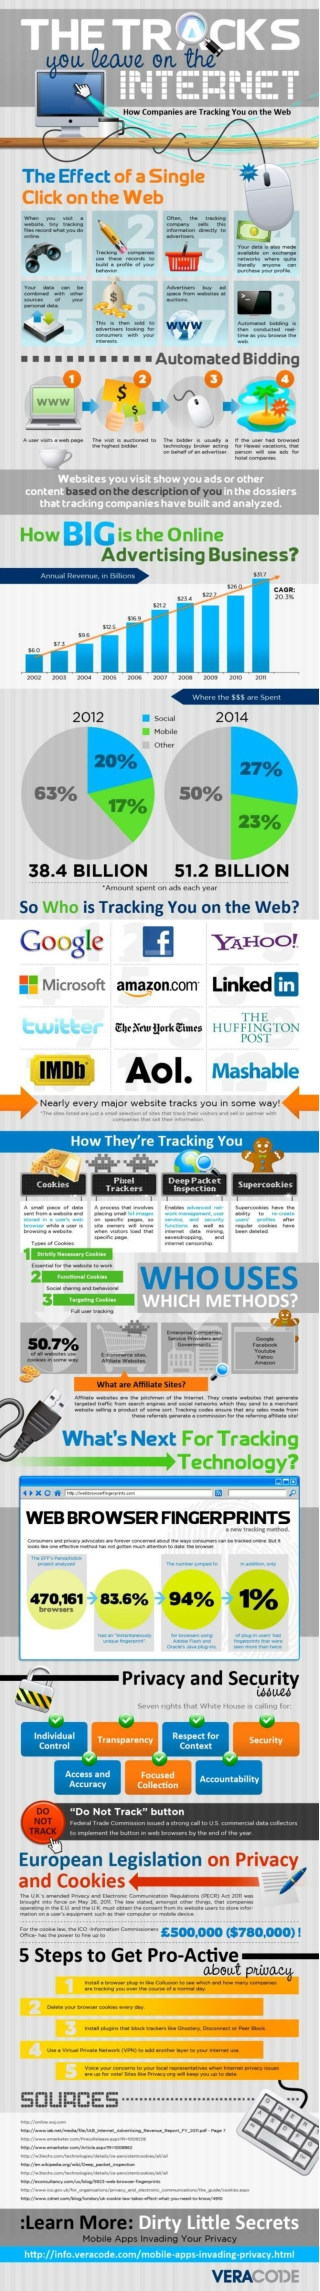 How Companies Track You on the Web